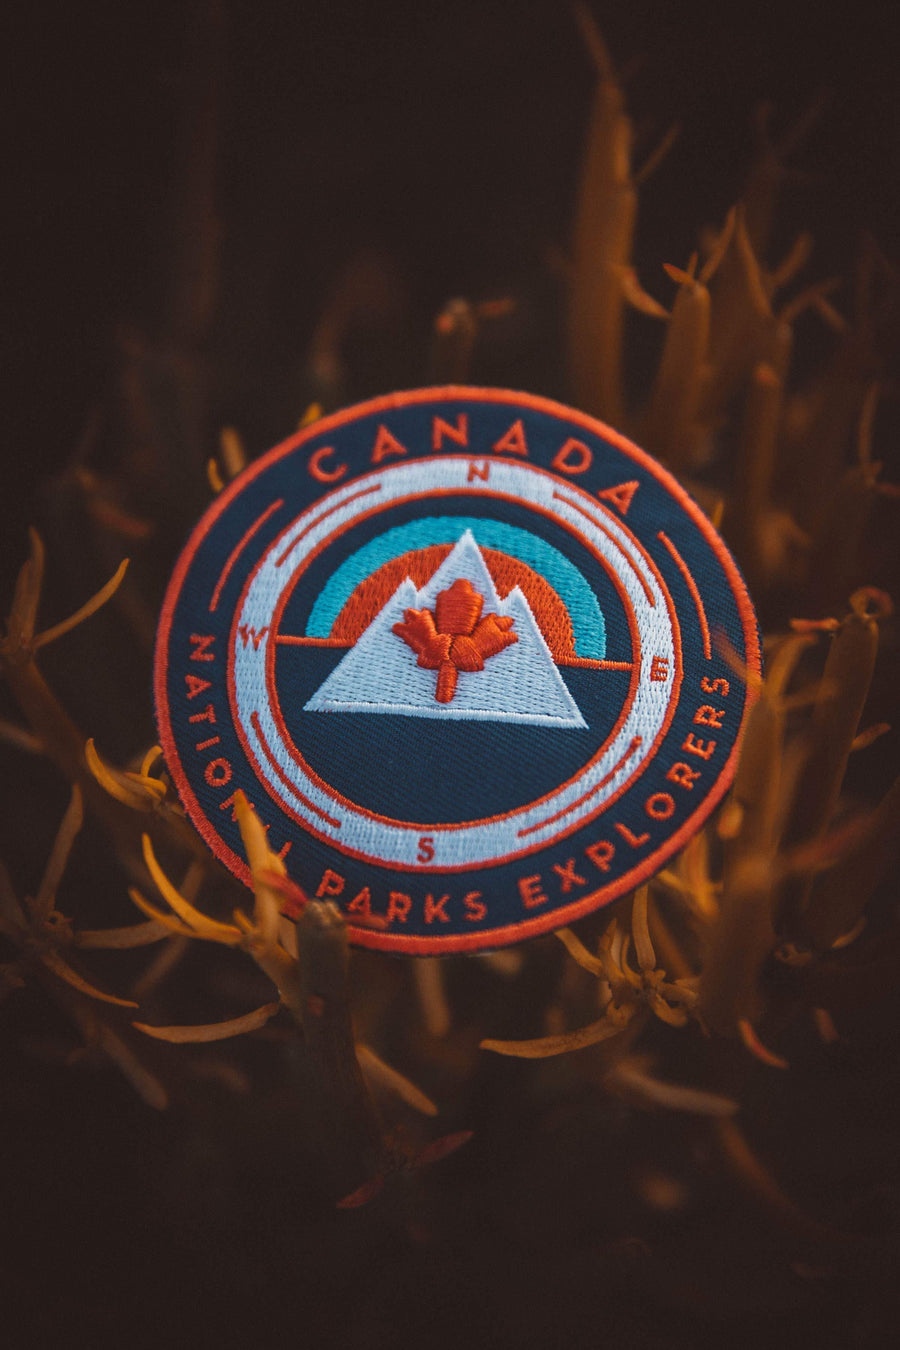 Canada Maple Leaf National Parks Explorer's Patch - Wondery